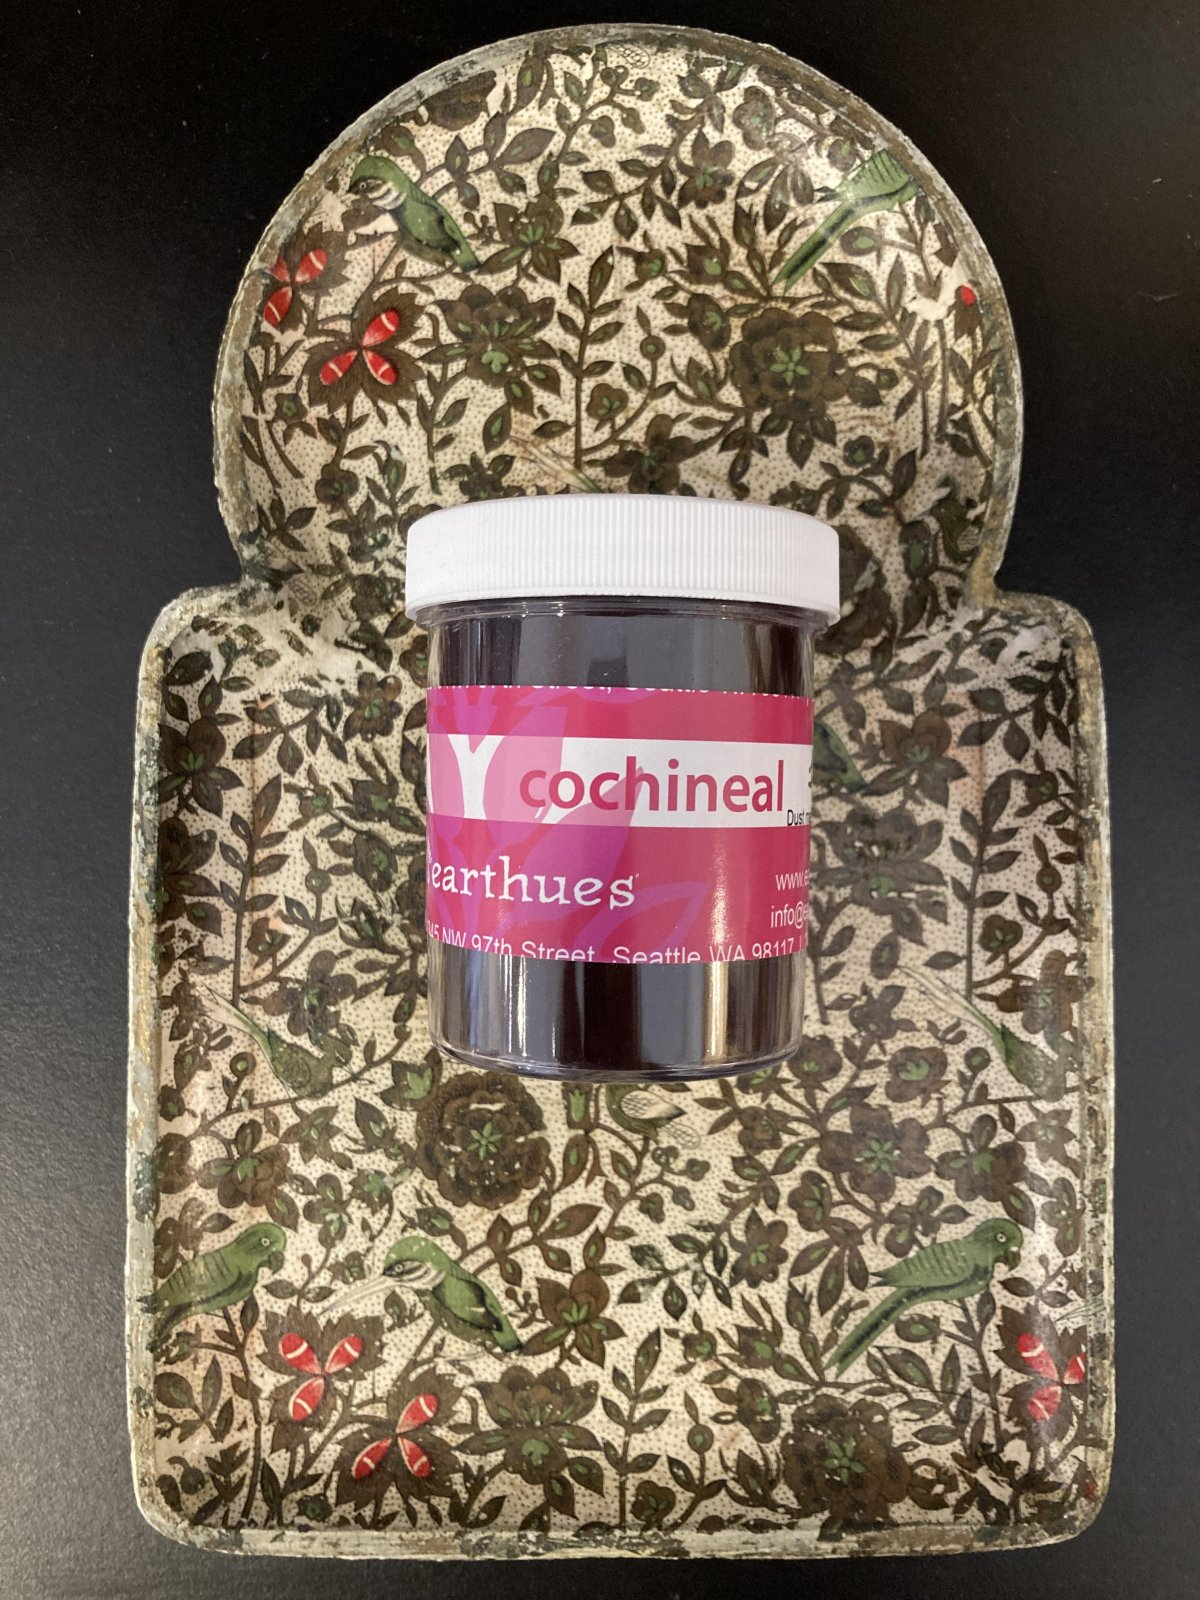 Cochineal Powdered Extract 1oz